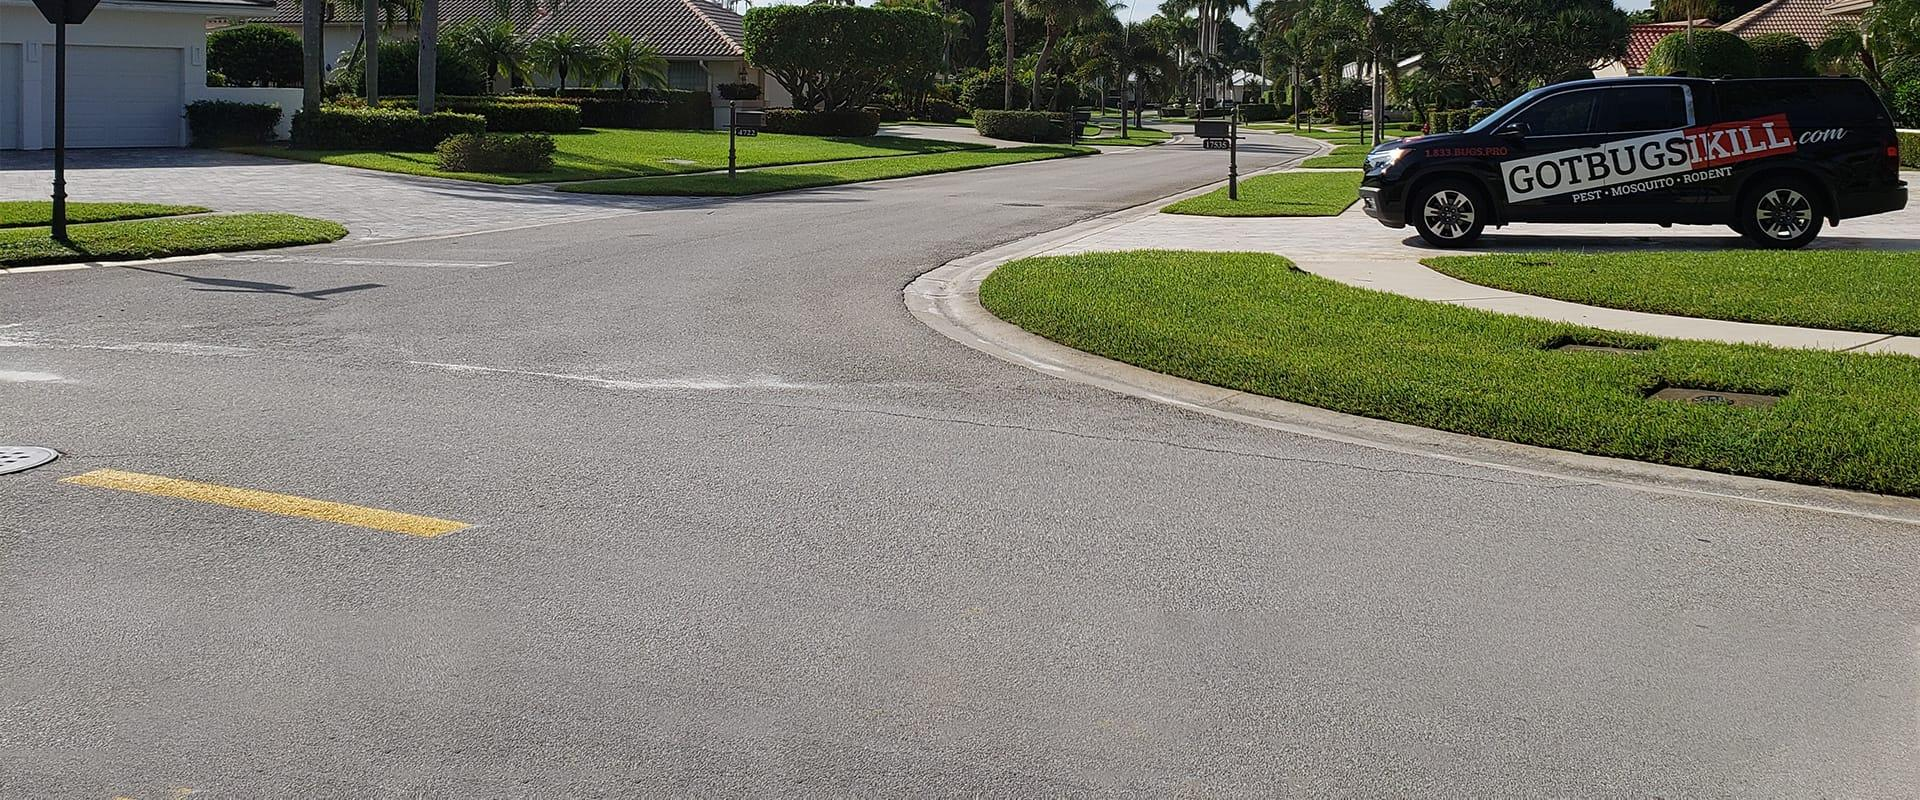 street view of a row of houses in boca raton florida